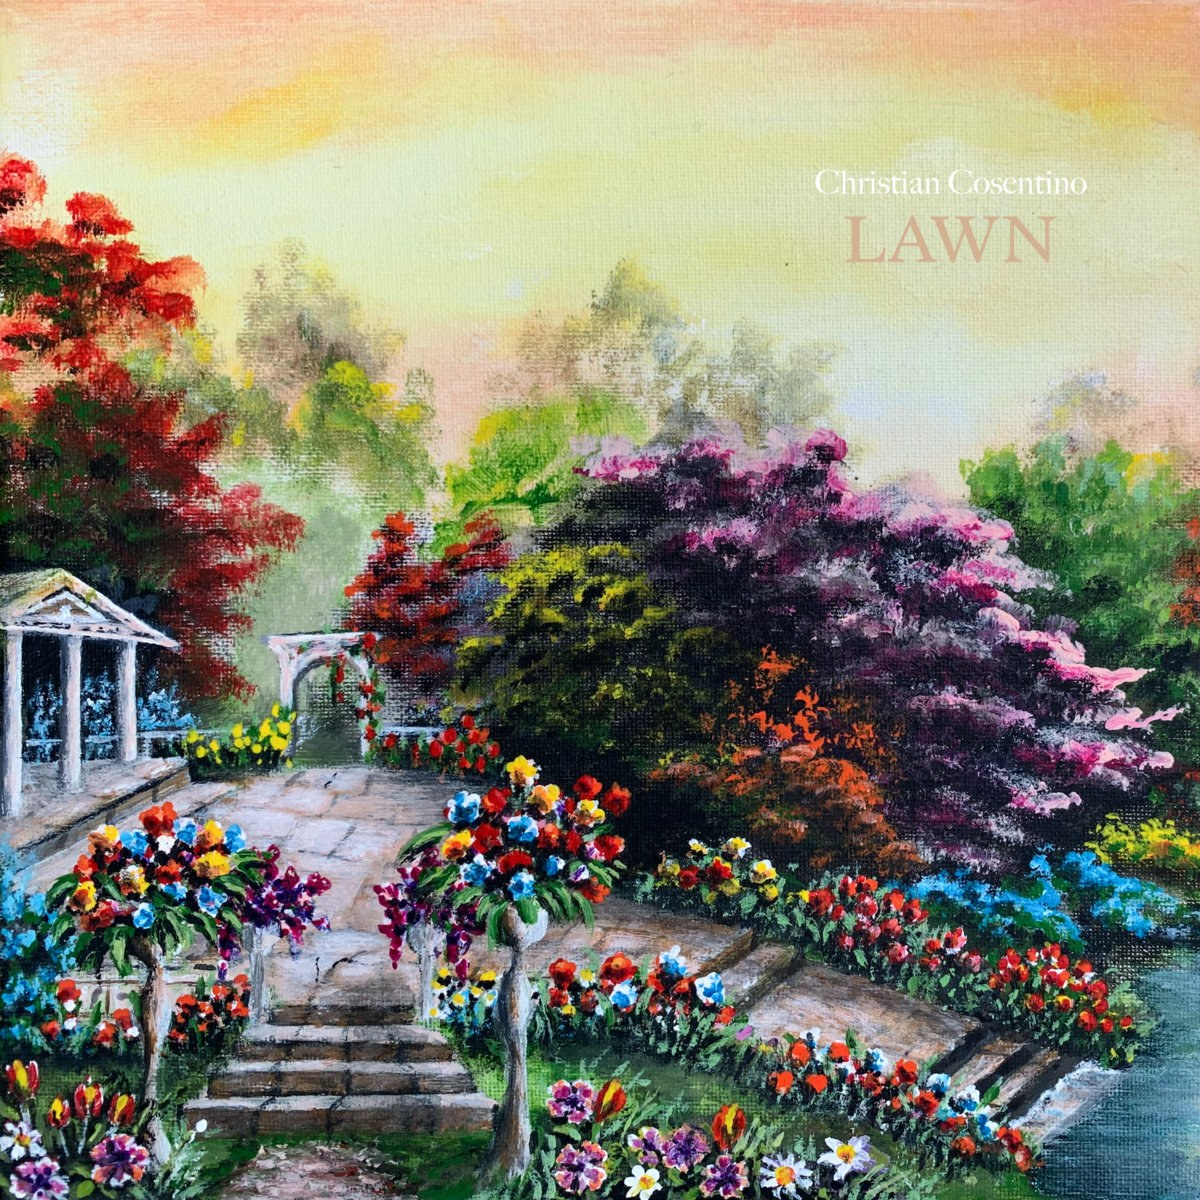 Reviews for Christian Cosentino - Lawn